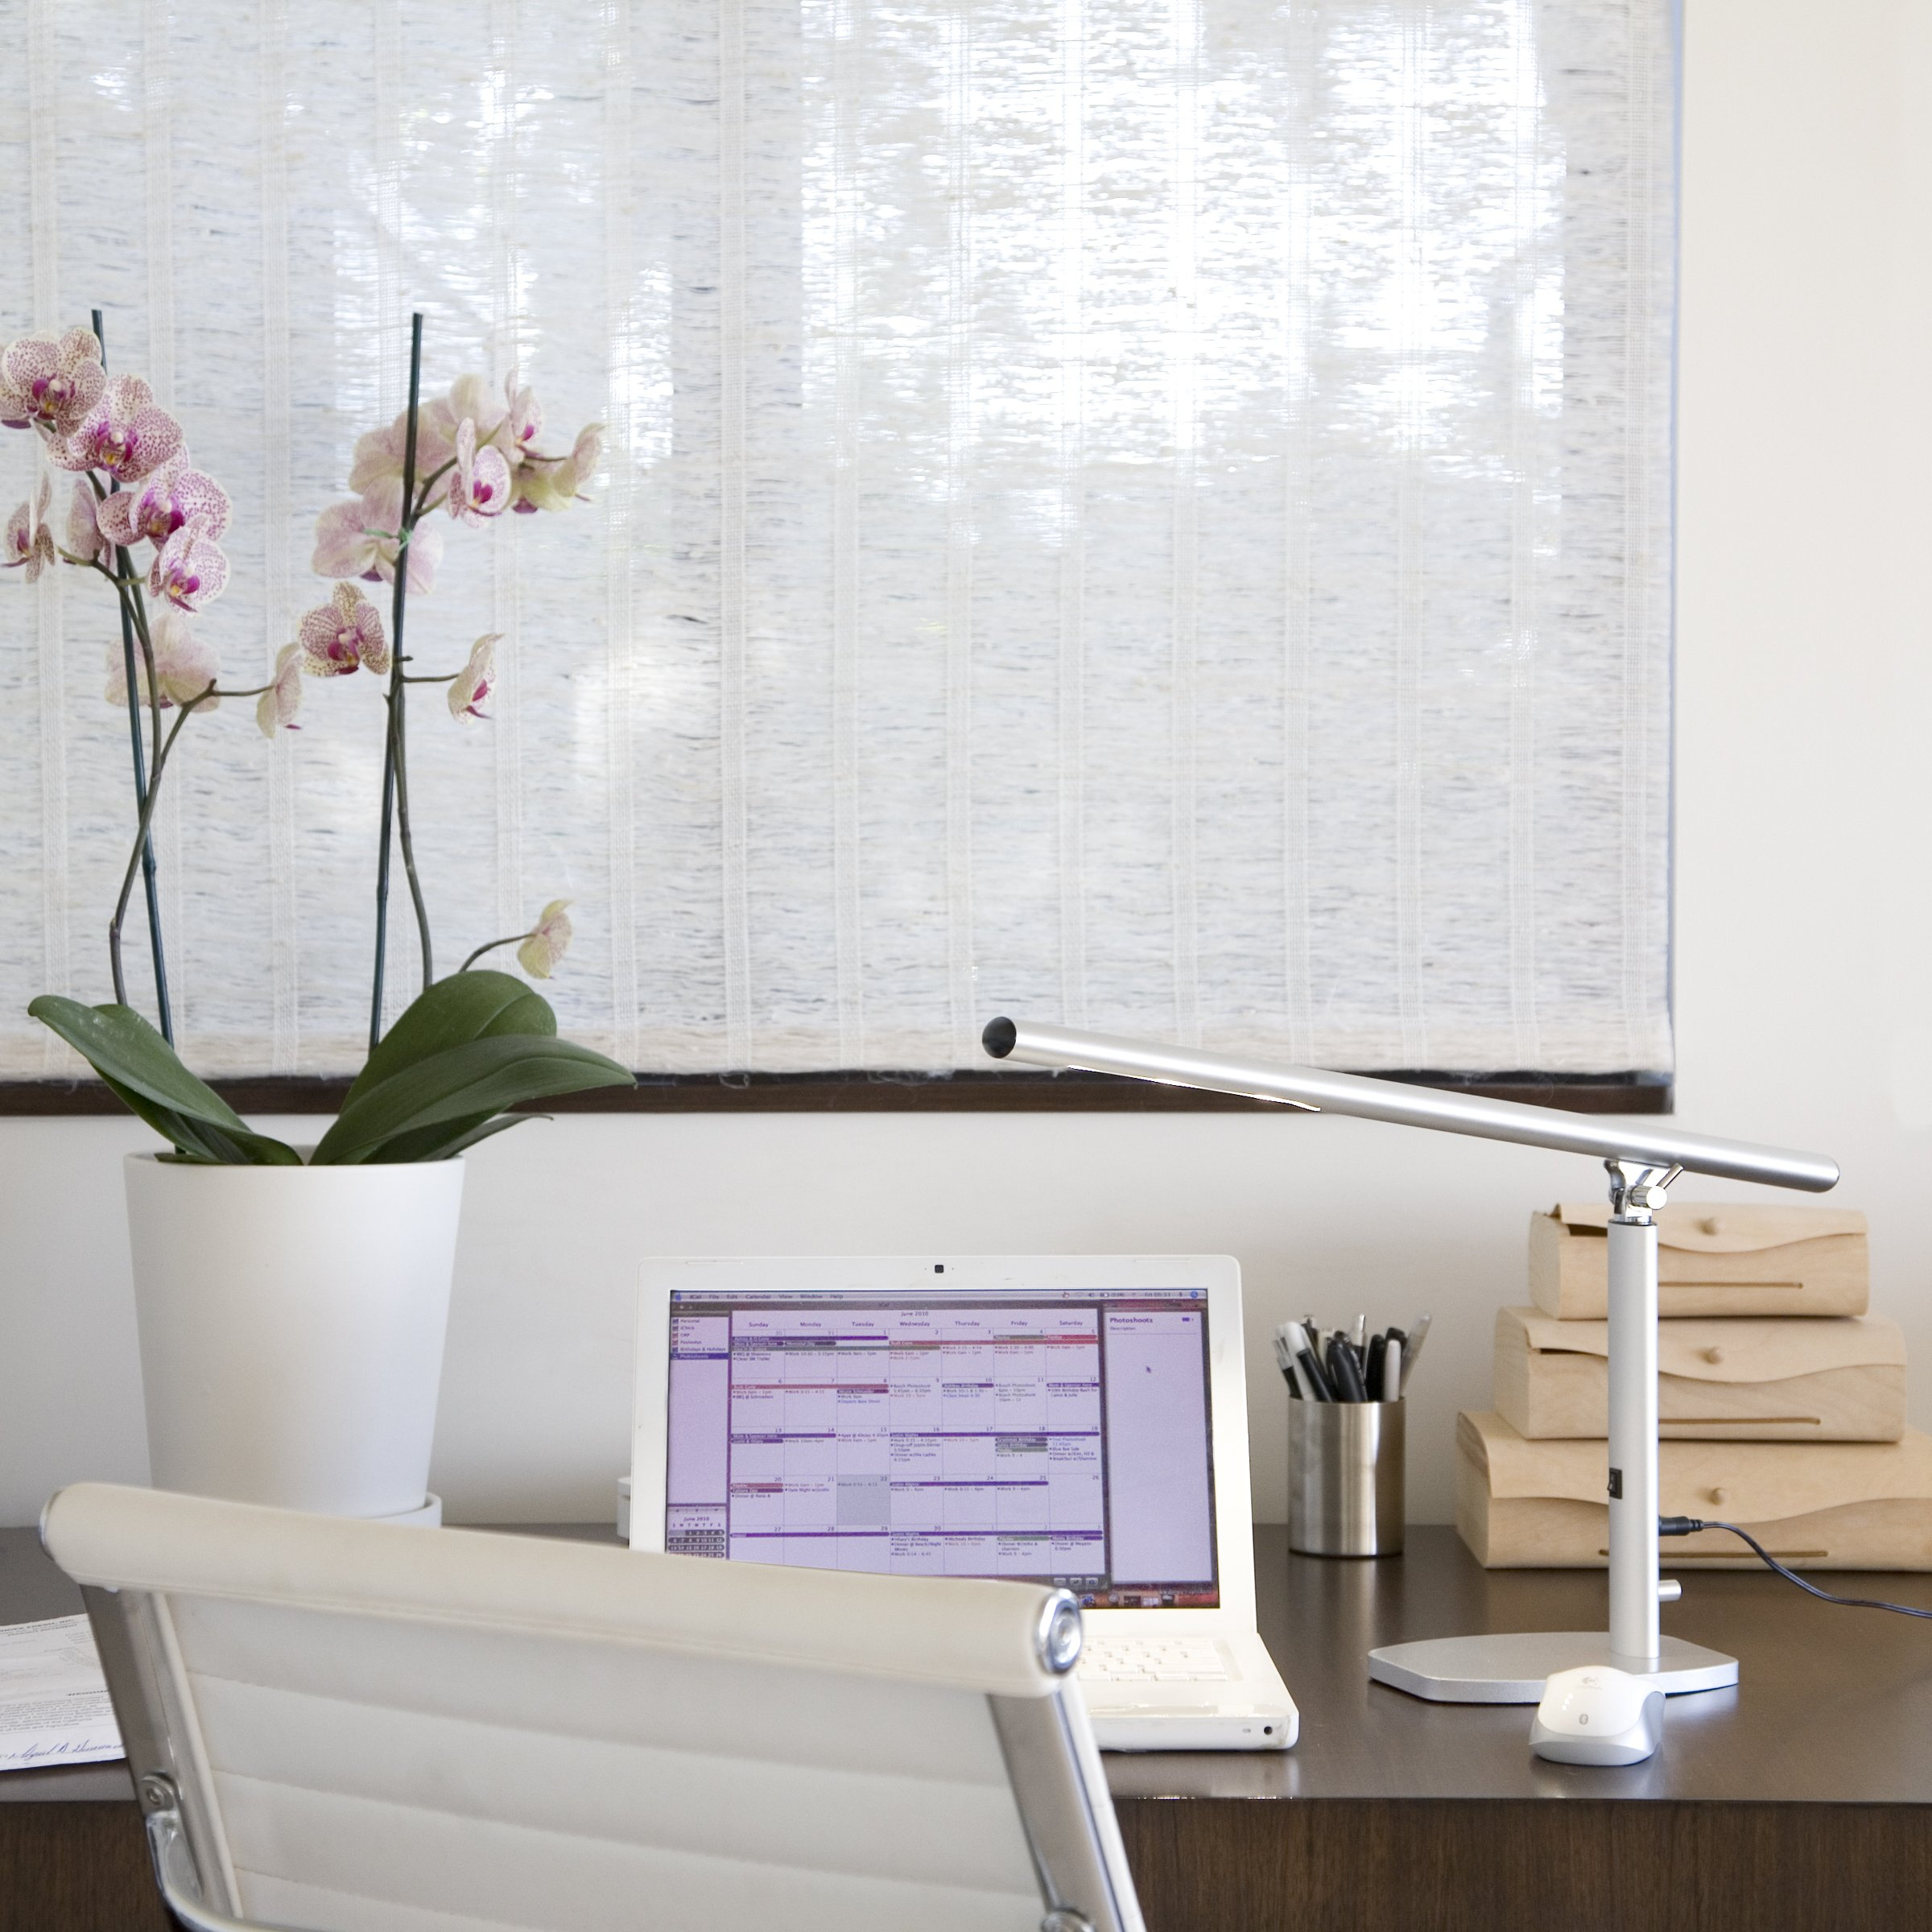 Mighty Bright Lux Bar Led Task Lamp by Mighty Bright (Image #1)